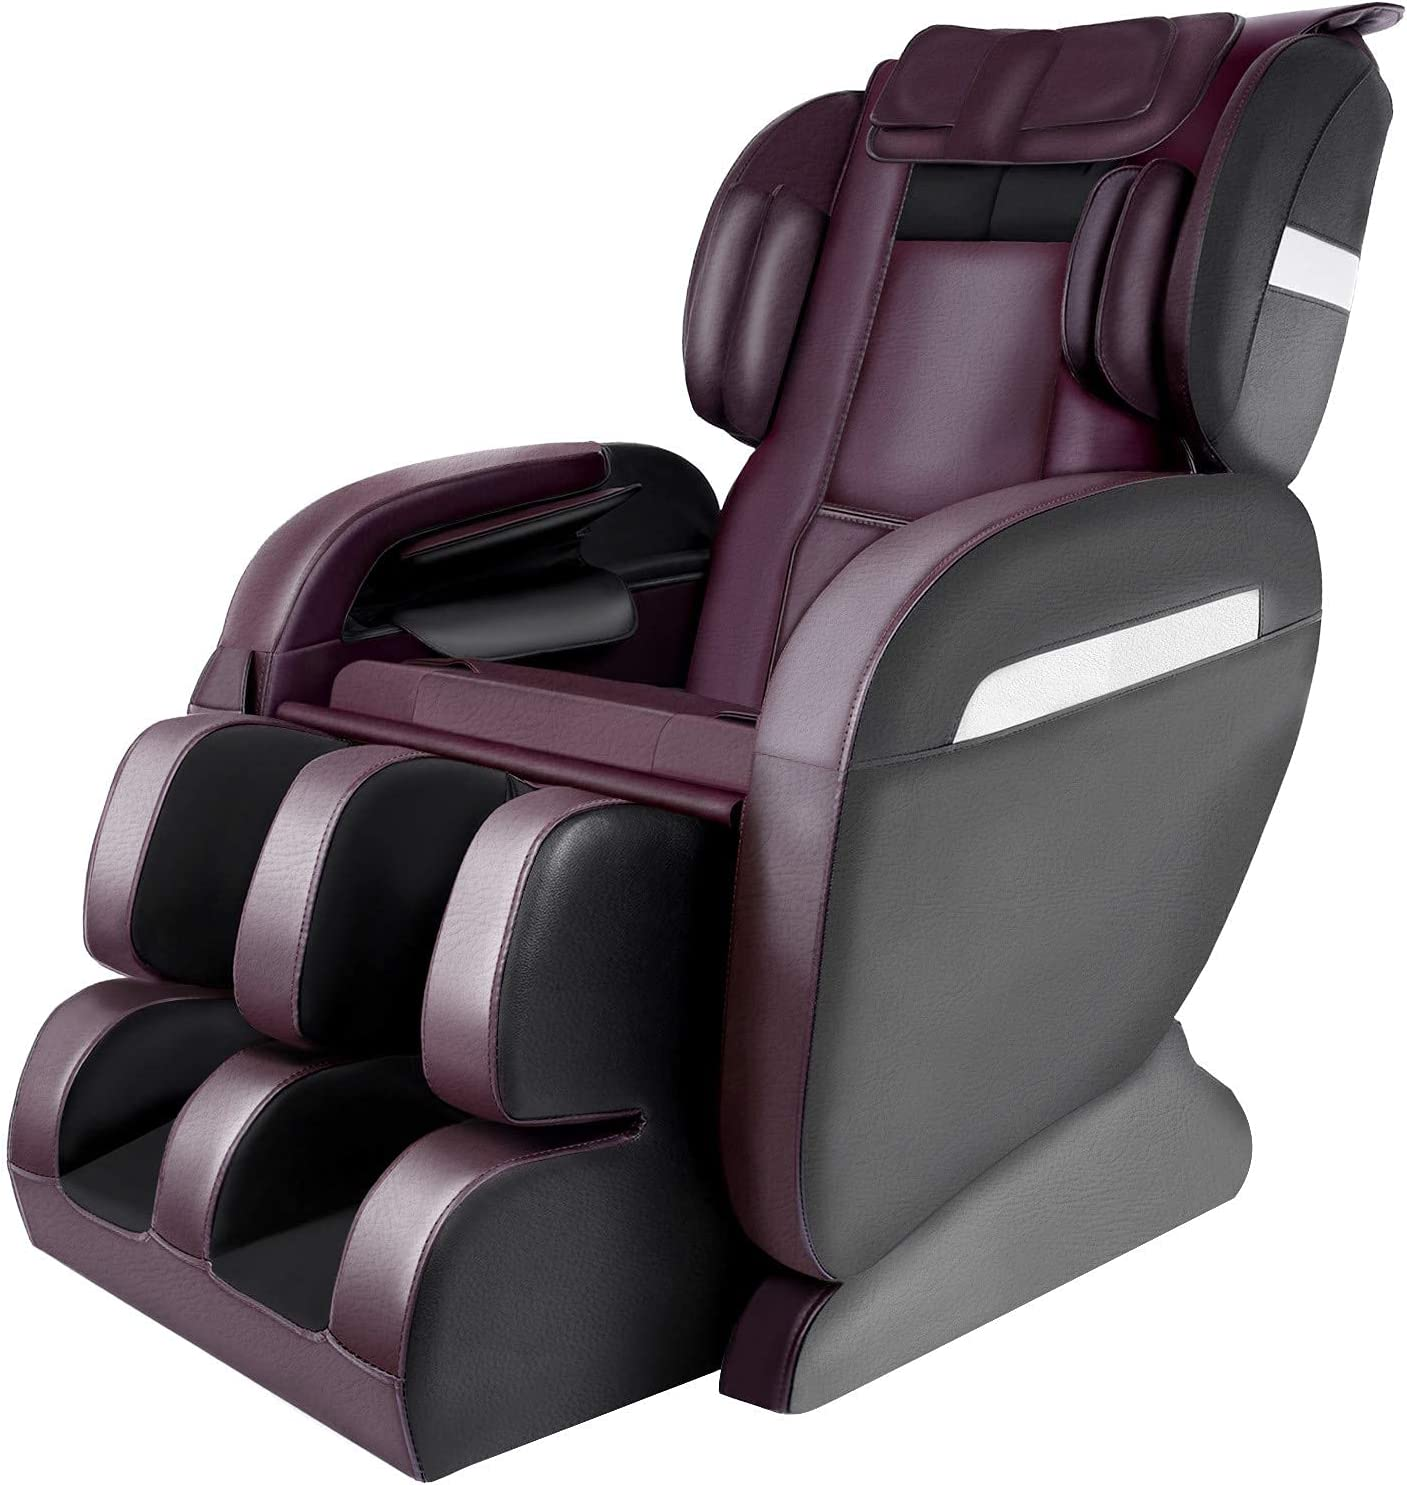 Zero Gravity Massage Chair 8D Electric Air 1 year warranty Displ Spring new work one after another Bag VFD